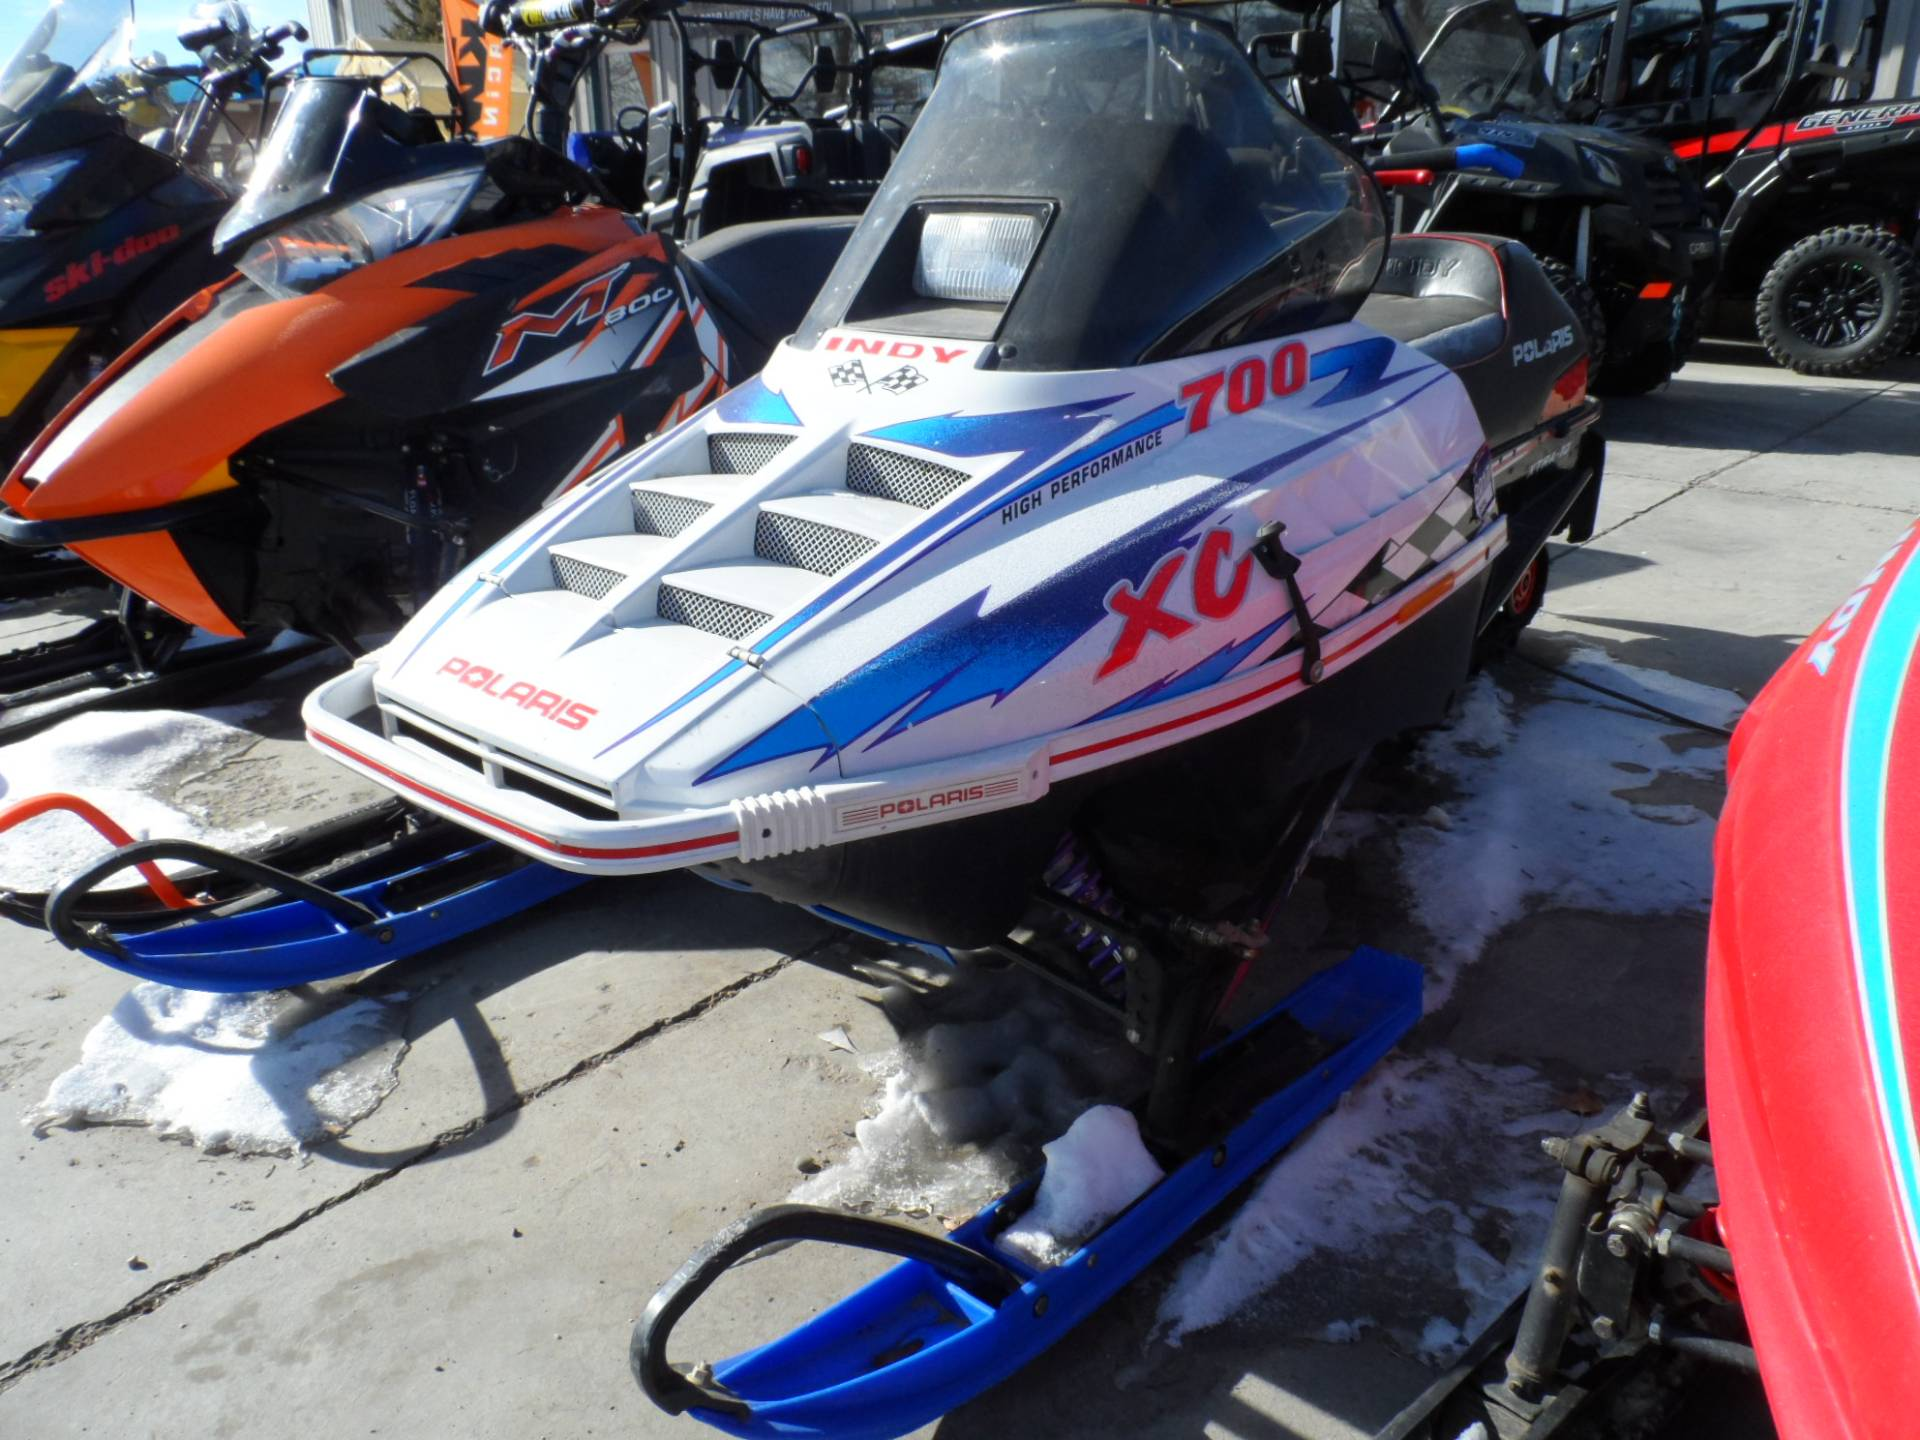 1997 Polaris 700 XC in Gunnison, Colorado